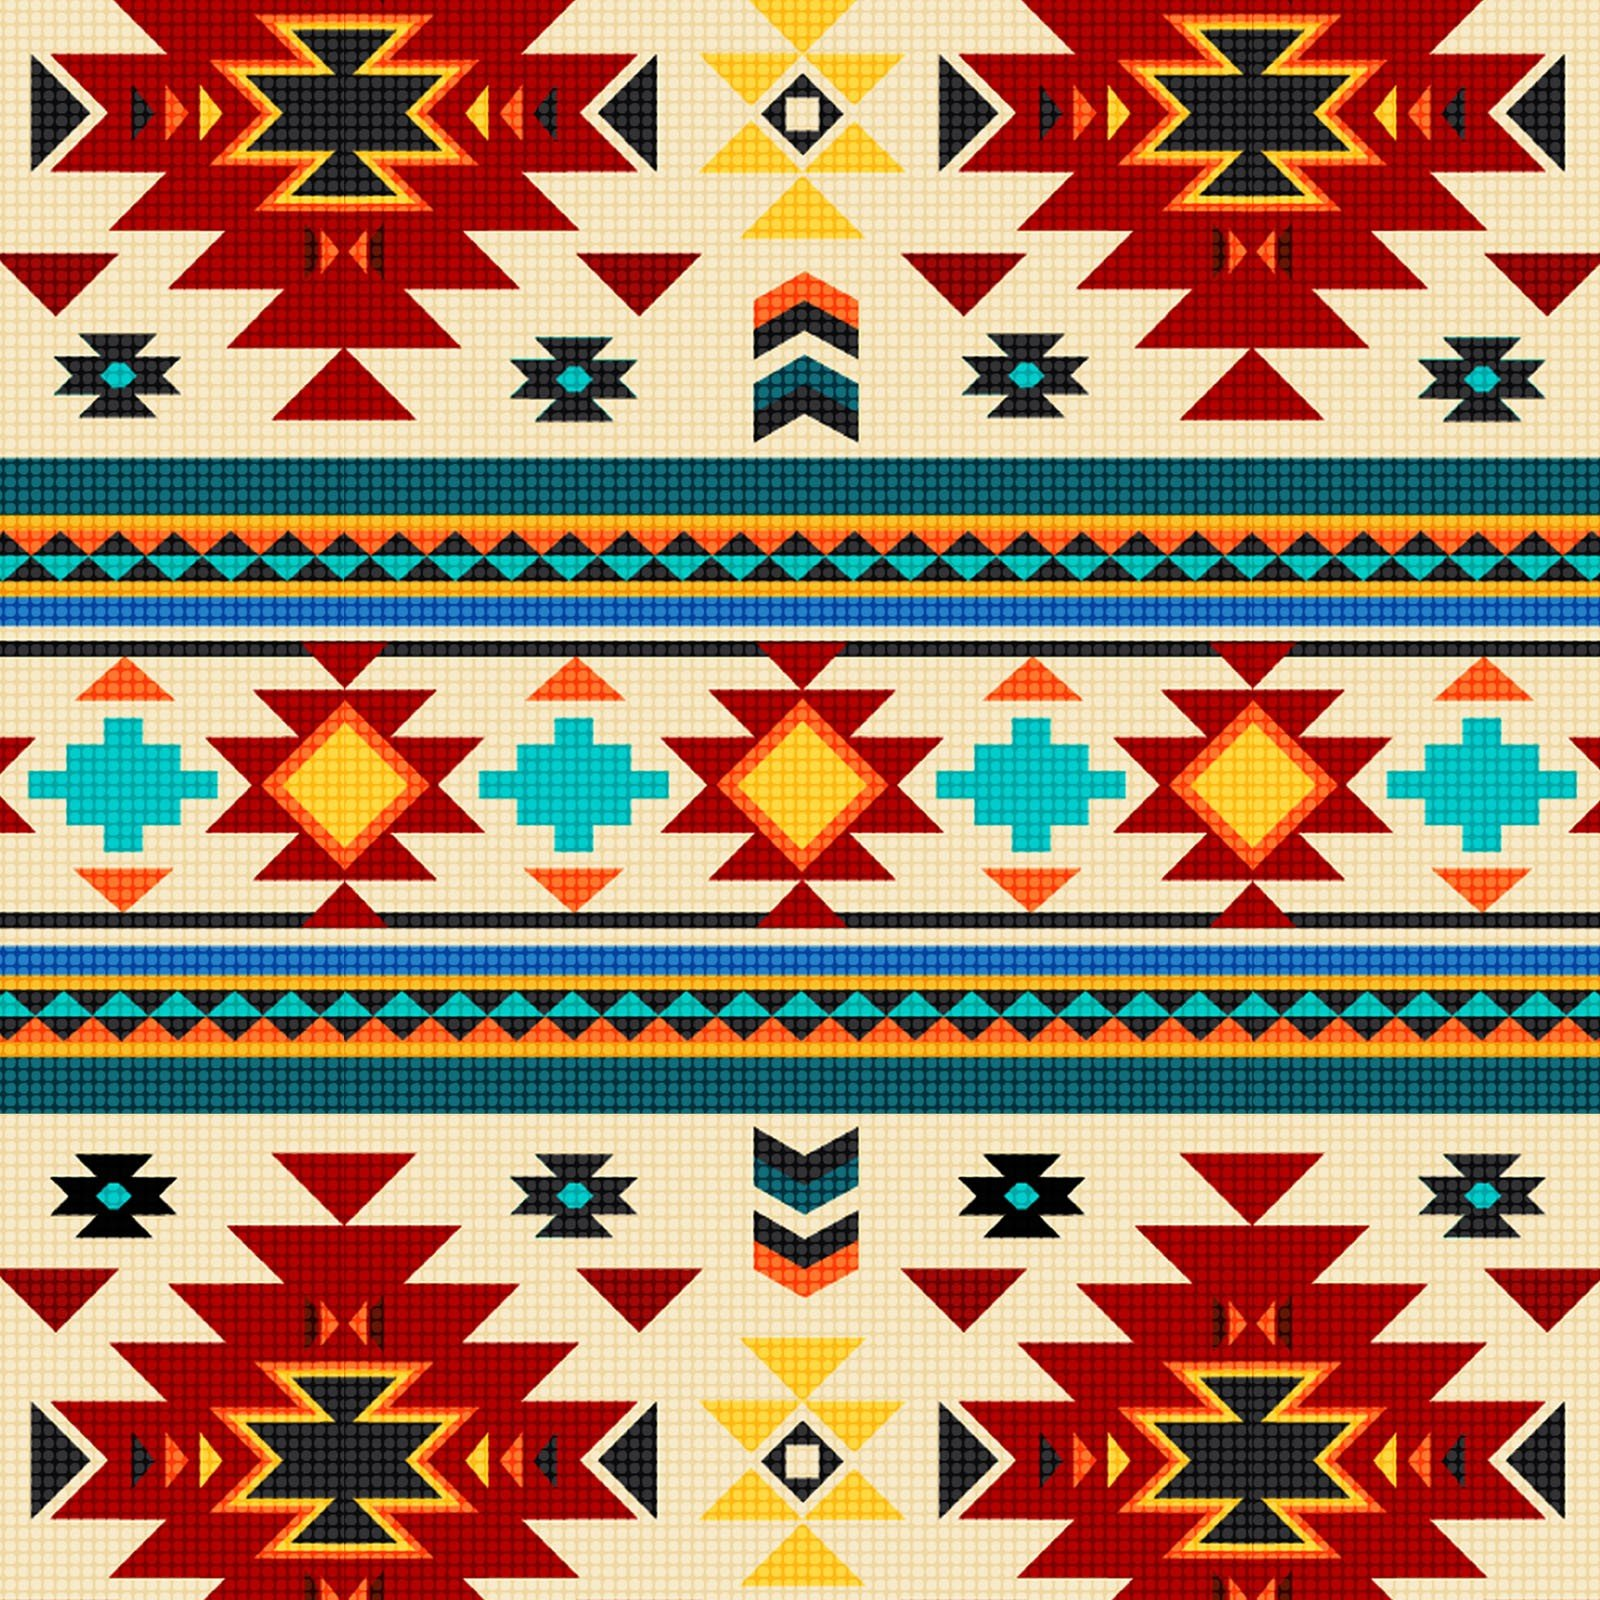 Southwest Sunset<br/>David Textiles 6847-7C-1